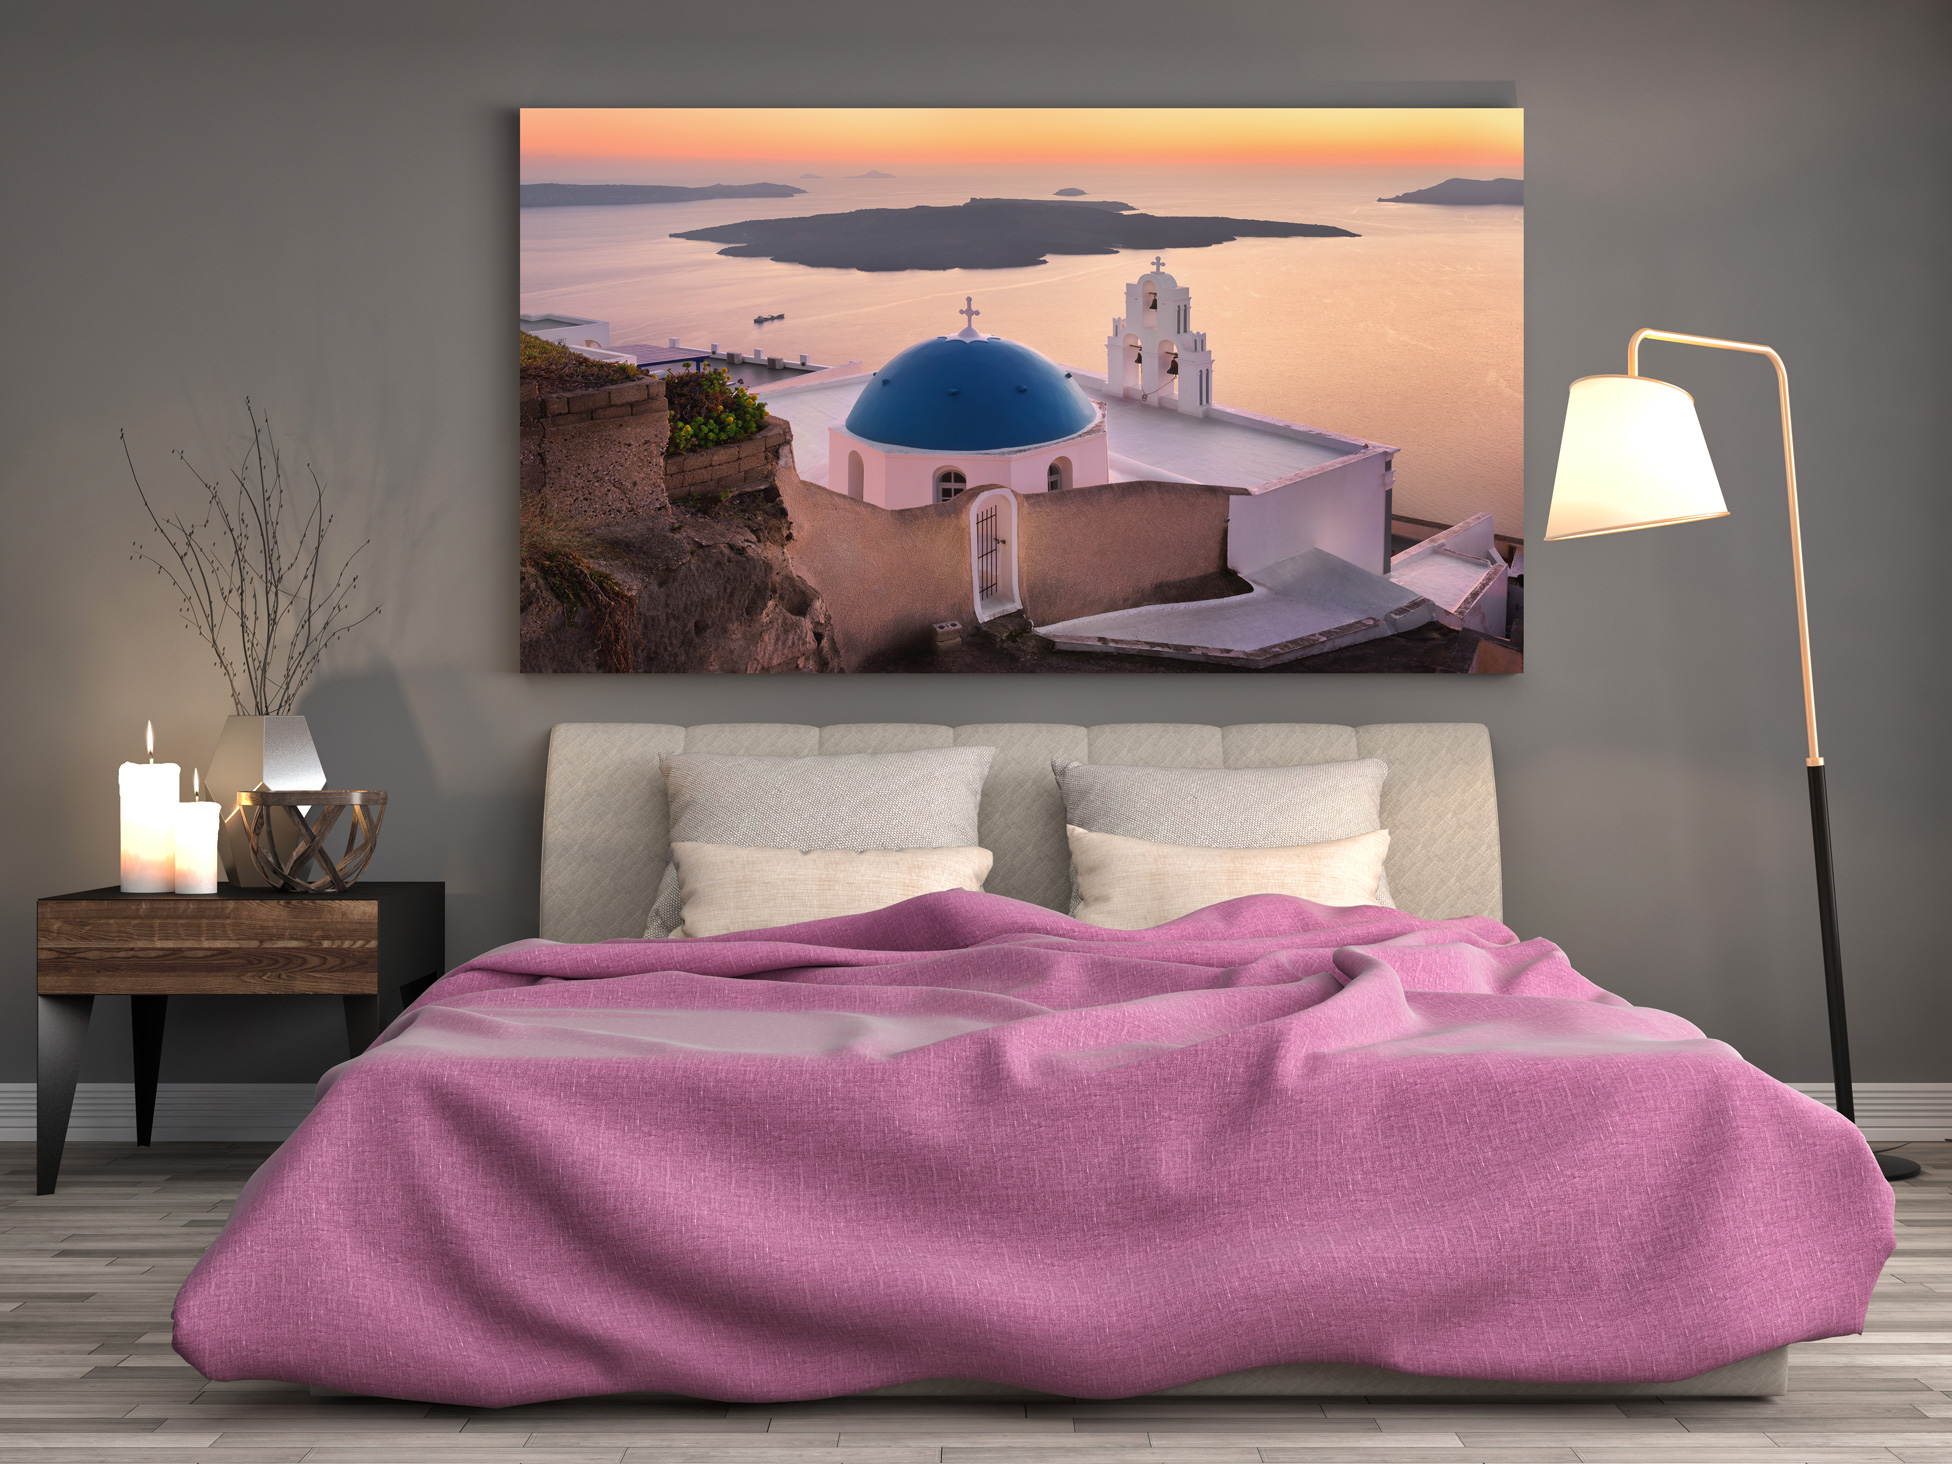 Room with Bed and Rome Fine Art Print above